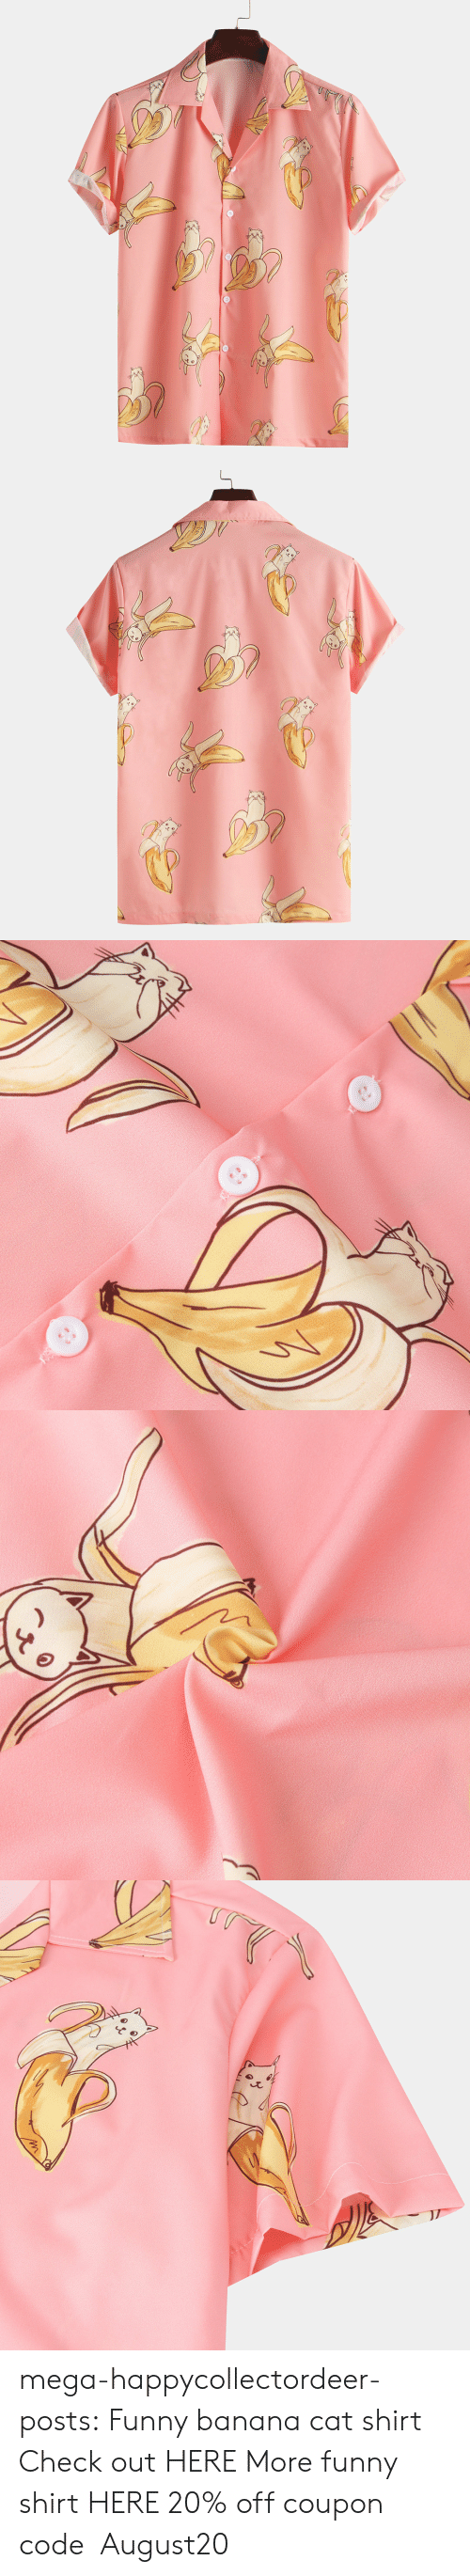 vip: mega-happycollectordeer-posts: Funny banana cat shirt Check out HERE More funny shirt HERE 20% off coupon code:August20